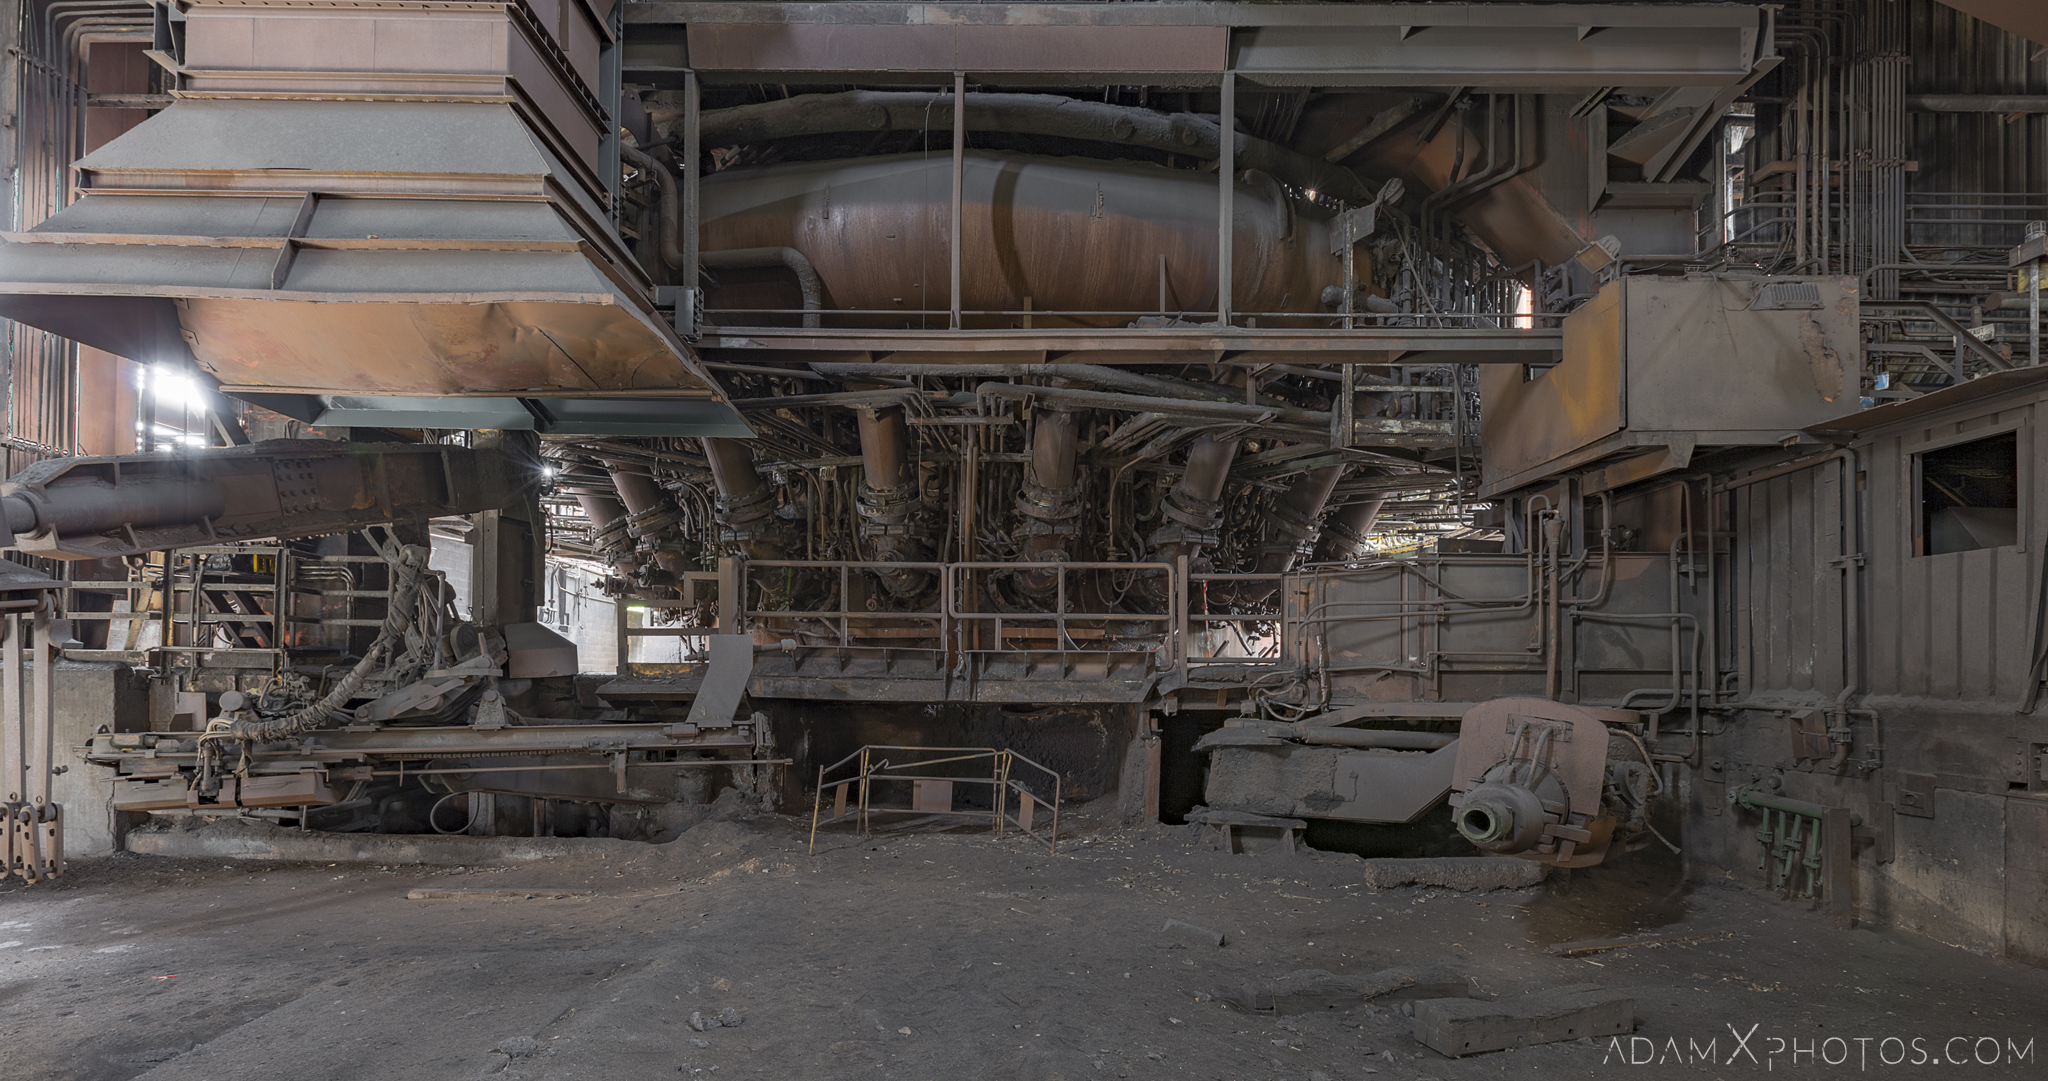 bottom of blast furnace P3 HFX Florange Hayange ArcelorMittal blast furnaces steel works plant Industrial Industry Adam X Urbex Urban Exploration France Access 2017 Abandoned decay lost forgotten derelict location creepy haunting eerie